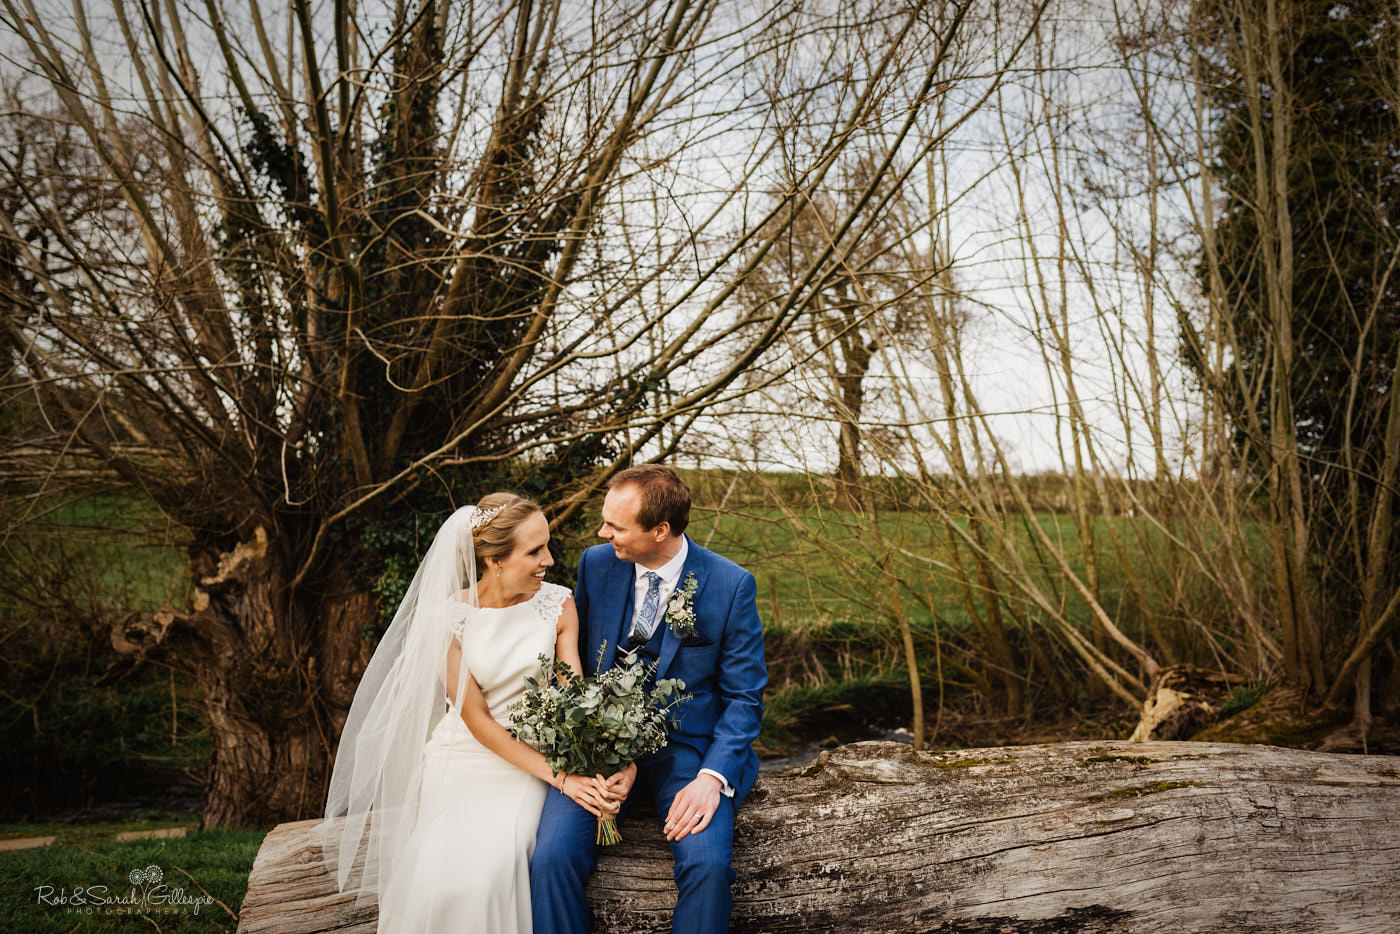 Bride and groom together at Swallows Nest Barn in Warwickshire